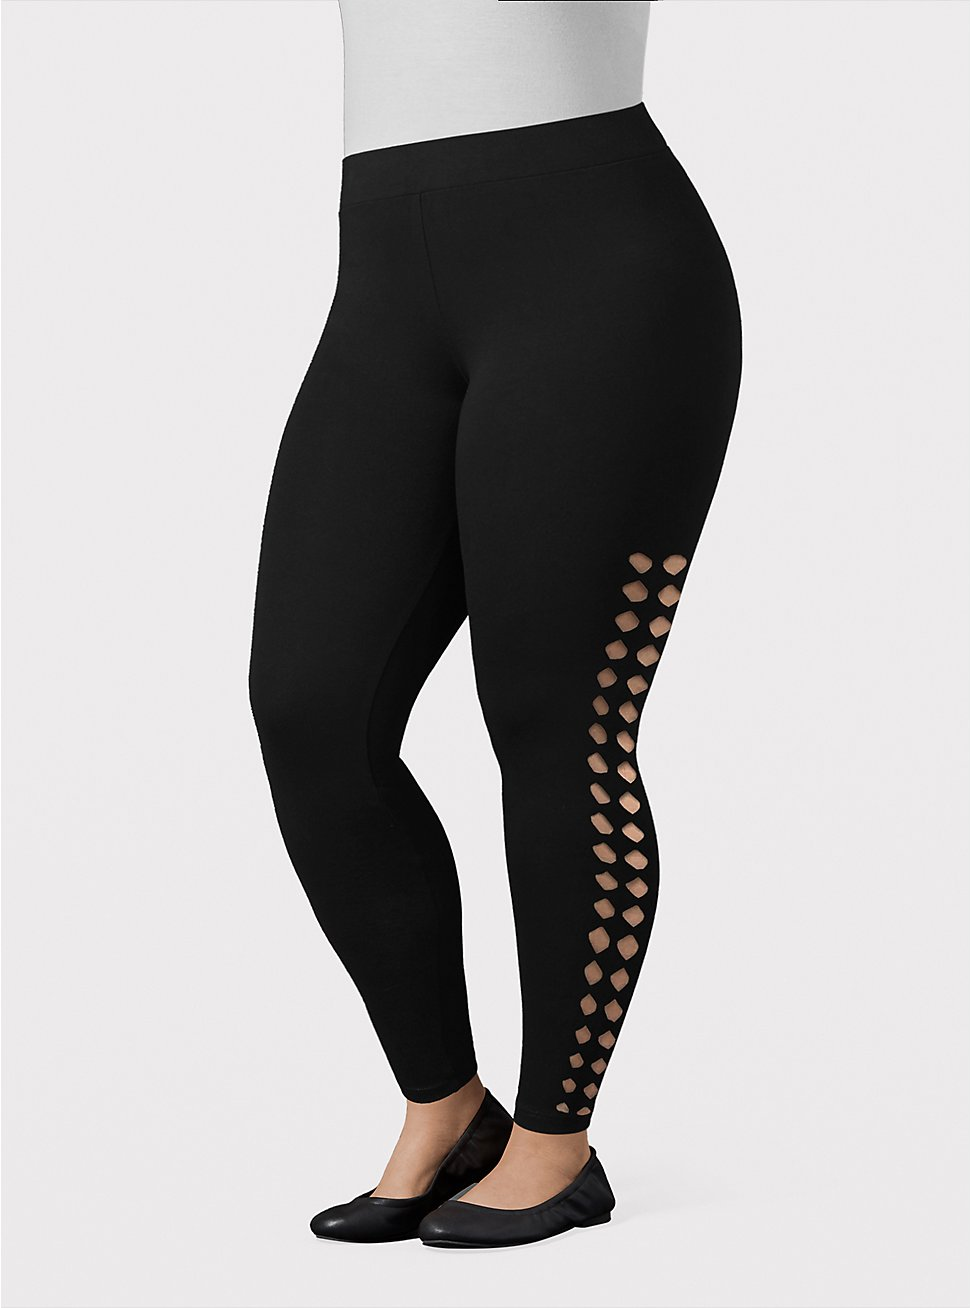 Premium Legging - Diamond Cutout Black, BLACK, hi-res